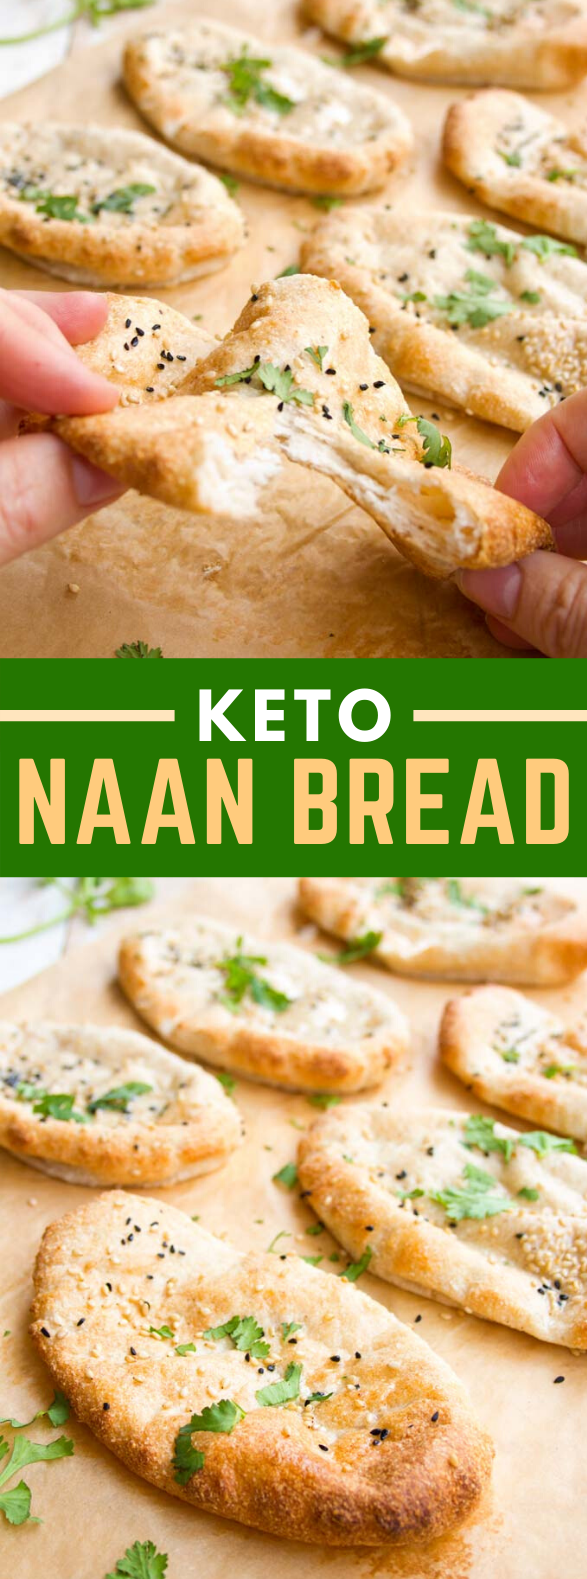 KETO NAAN (LOW CARB FLATBREAD) #diet #healthy